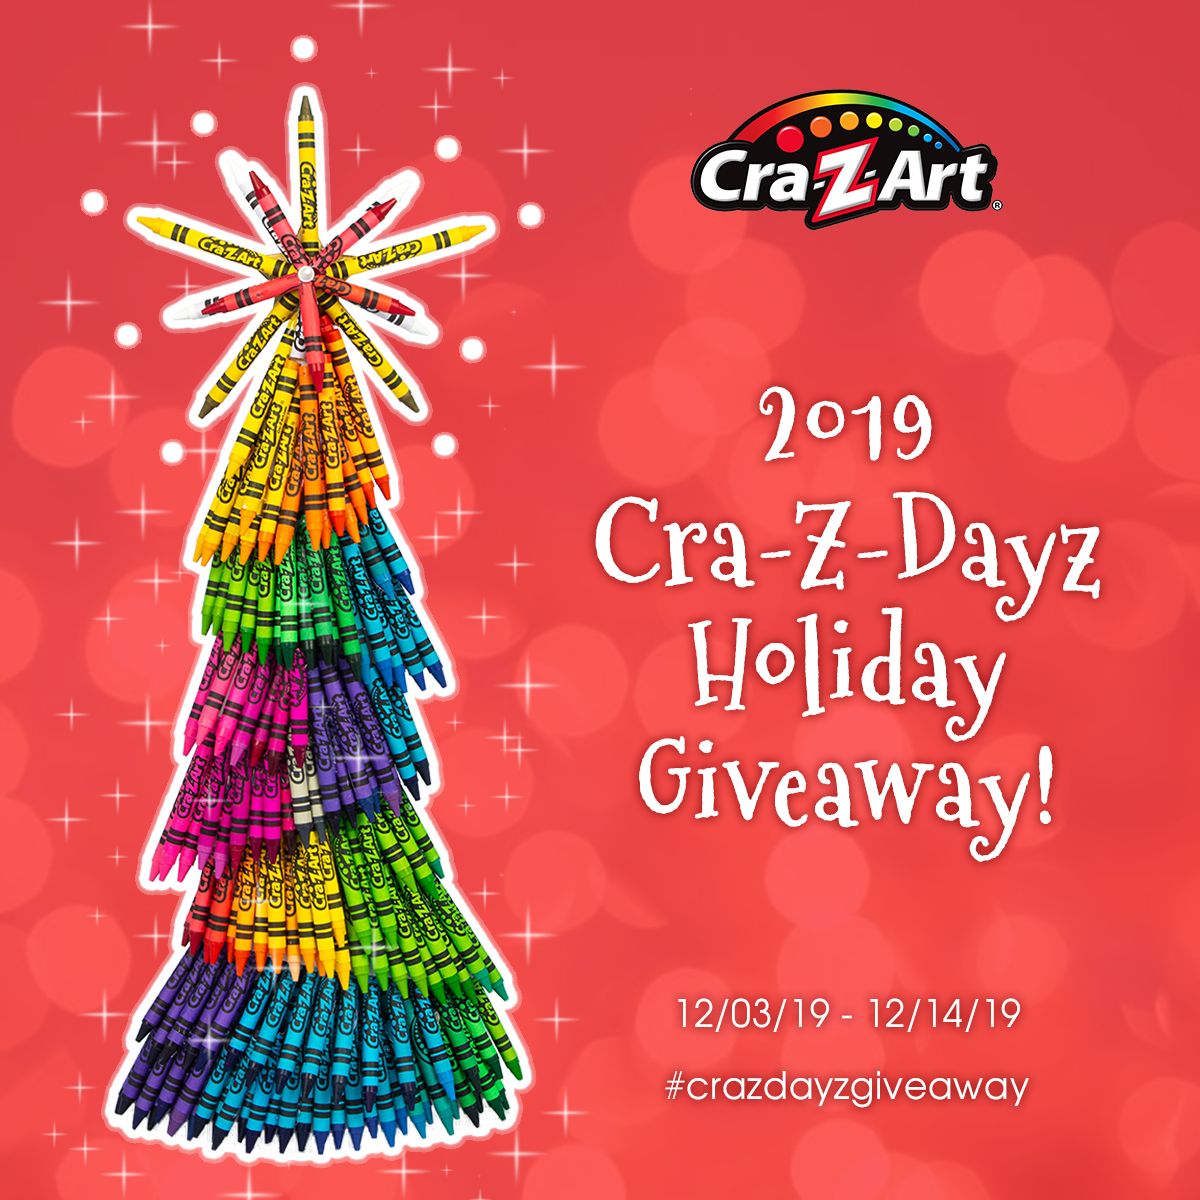 It S Cra Z Art S 2019 Cra Z Dayz Holiday Giveaway Enter Each Day For Your Chance To Win Crazdayzgiveaway Itunes Gift Cards Christmas Sweepstakes Giveaway